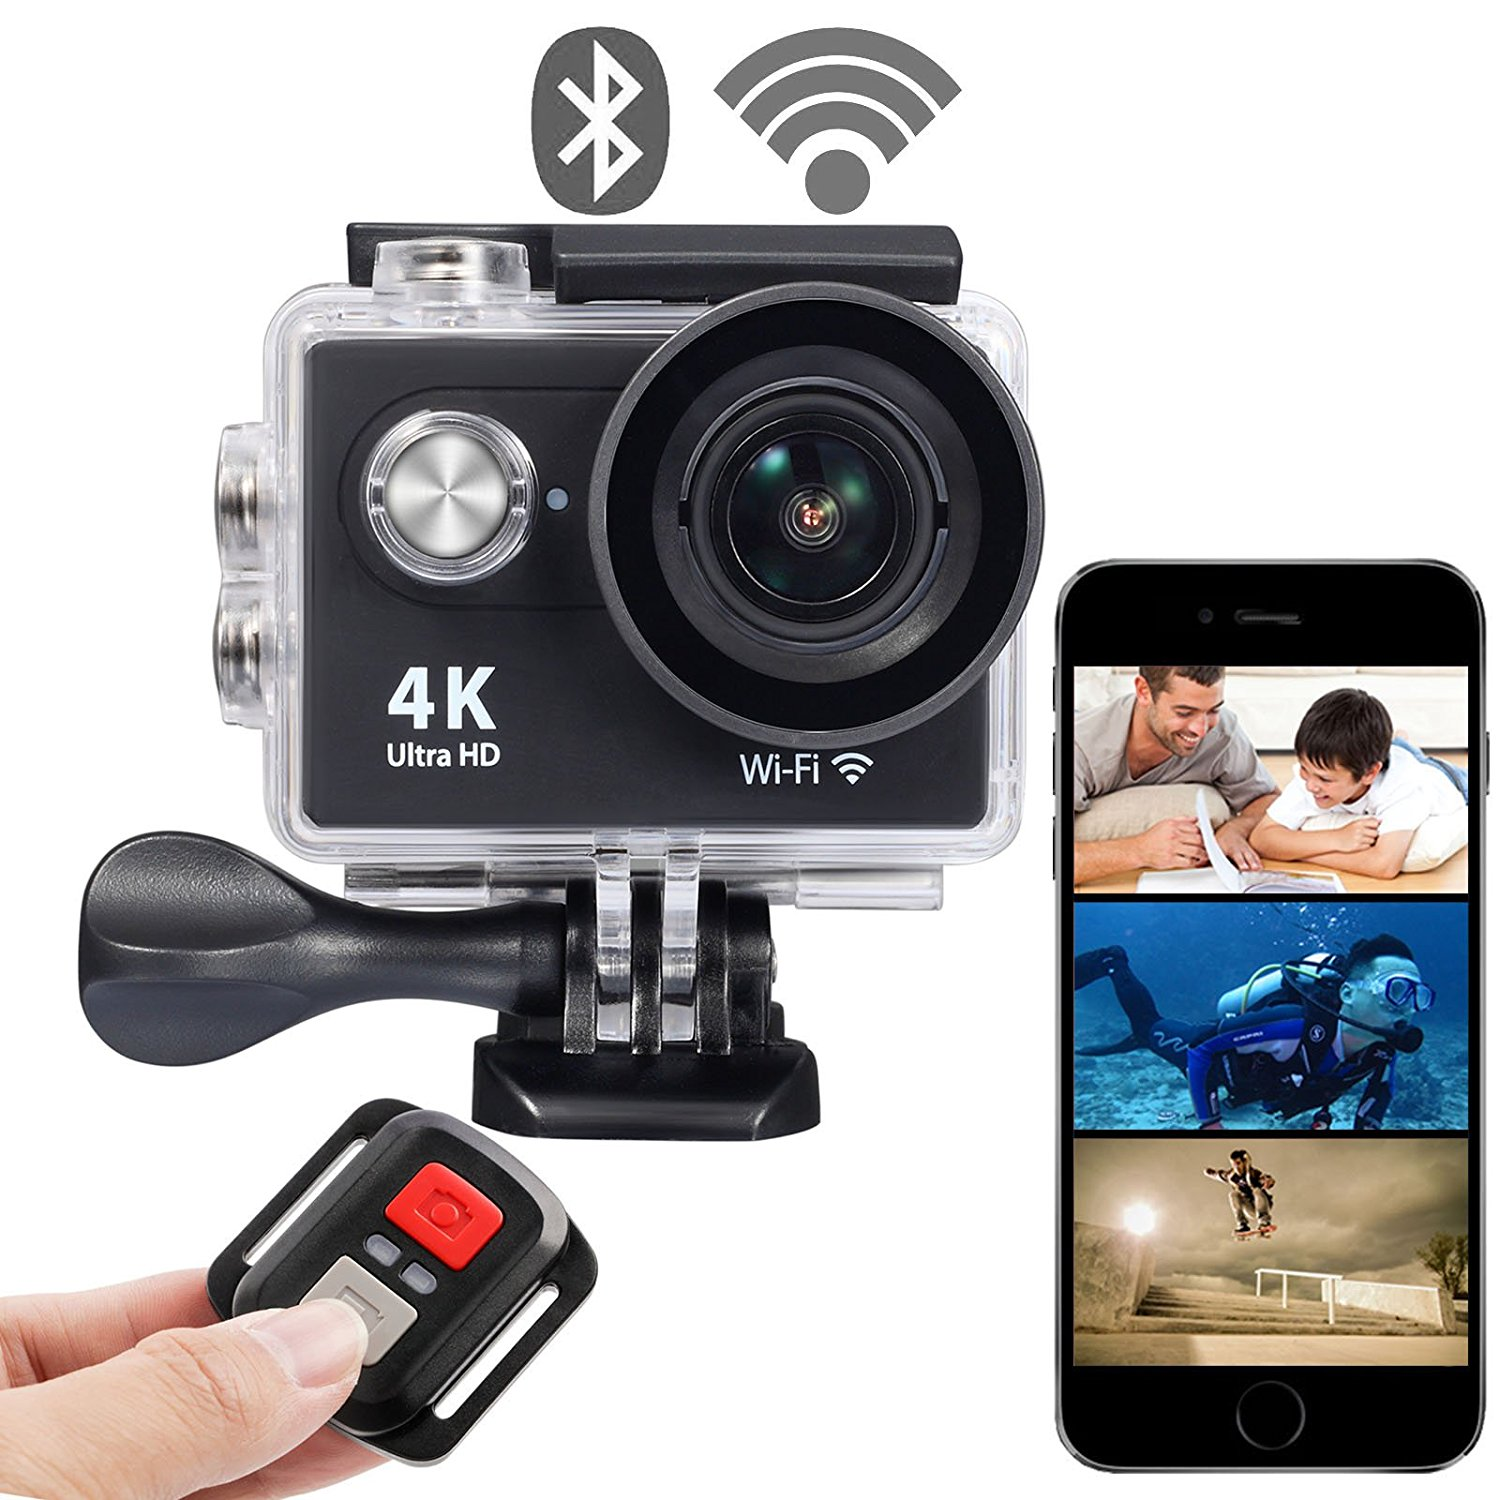 onlyee 4k wifi sports action camera ultra hd waterproof dv camcorder 12mp 170 degree wide angle. Black Bedroom Furniture Sets. Home Design Ideas